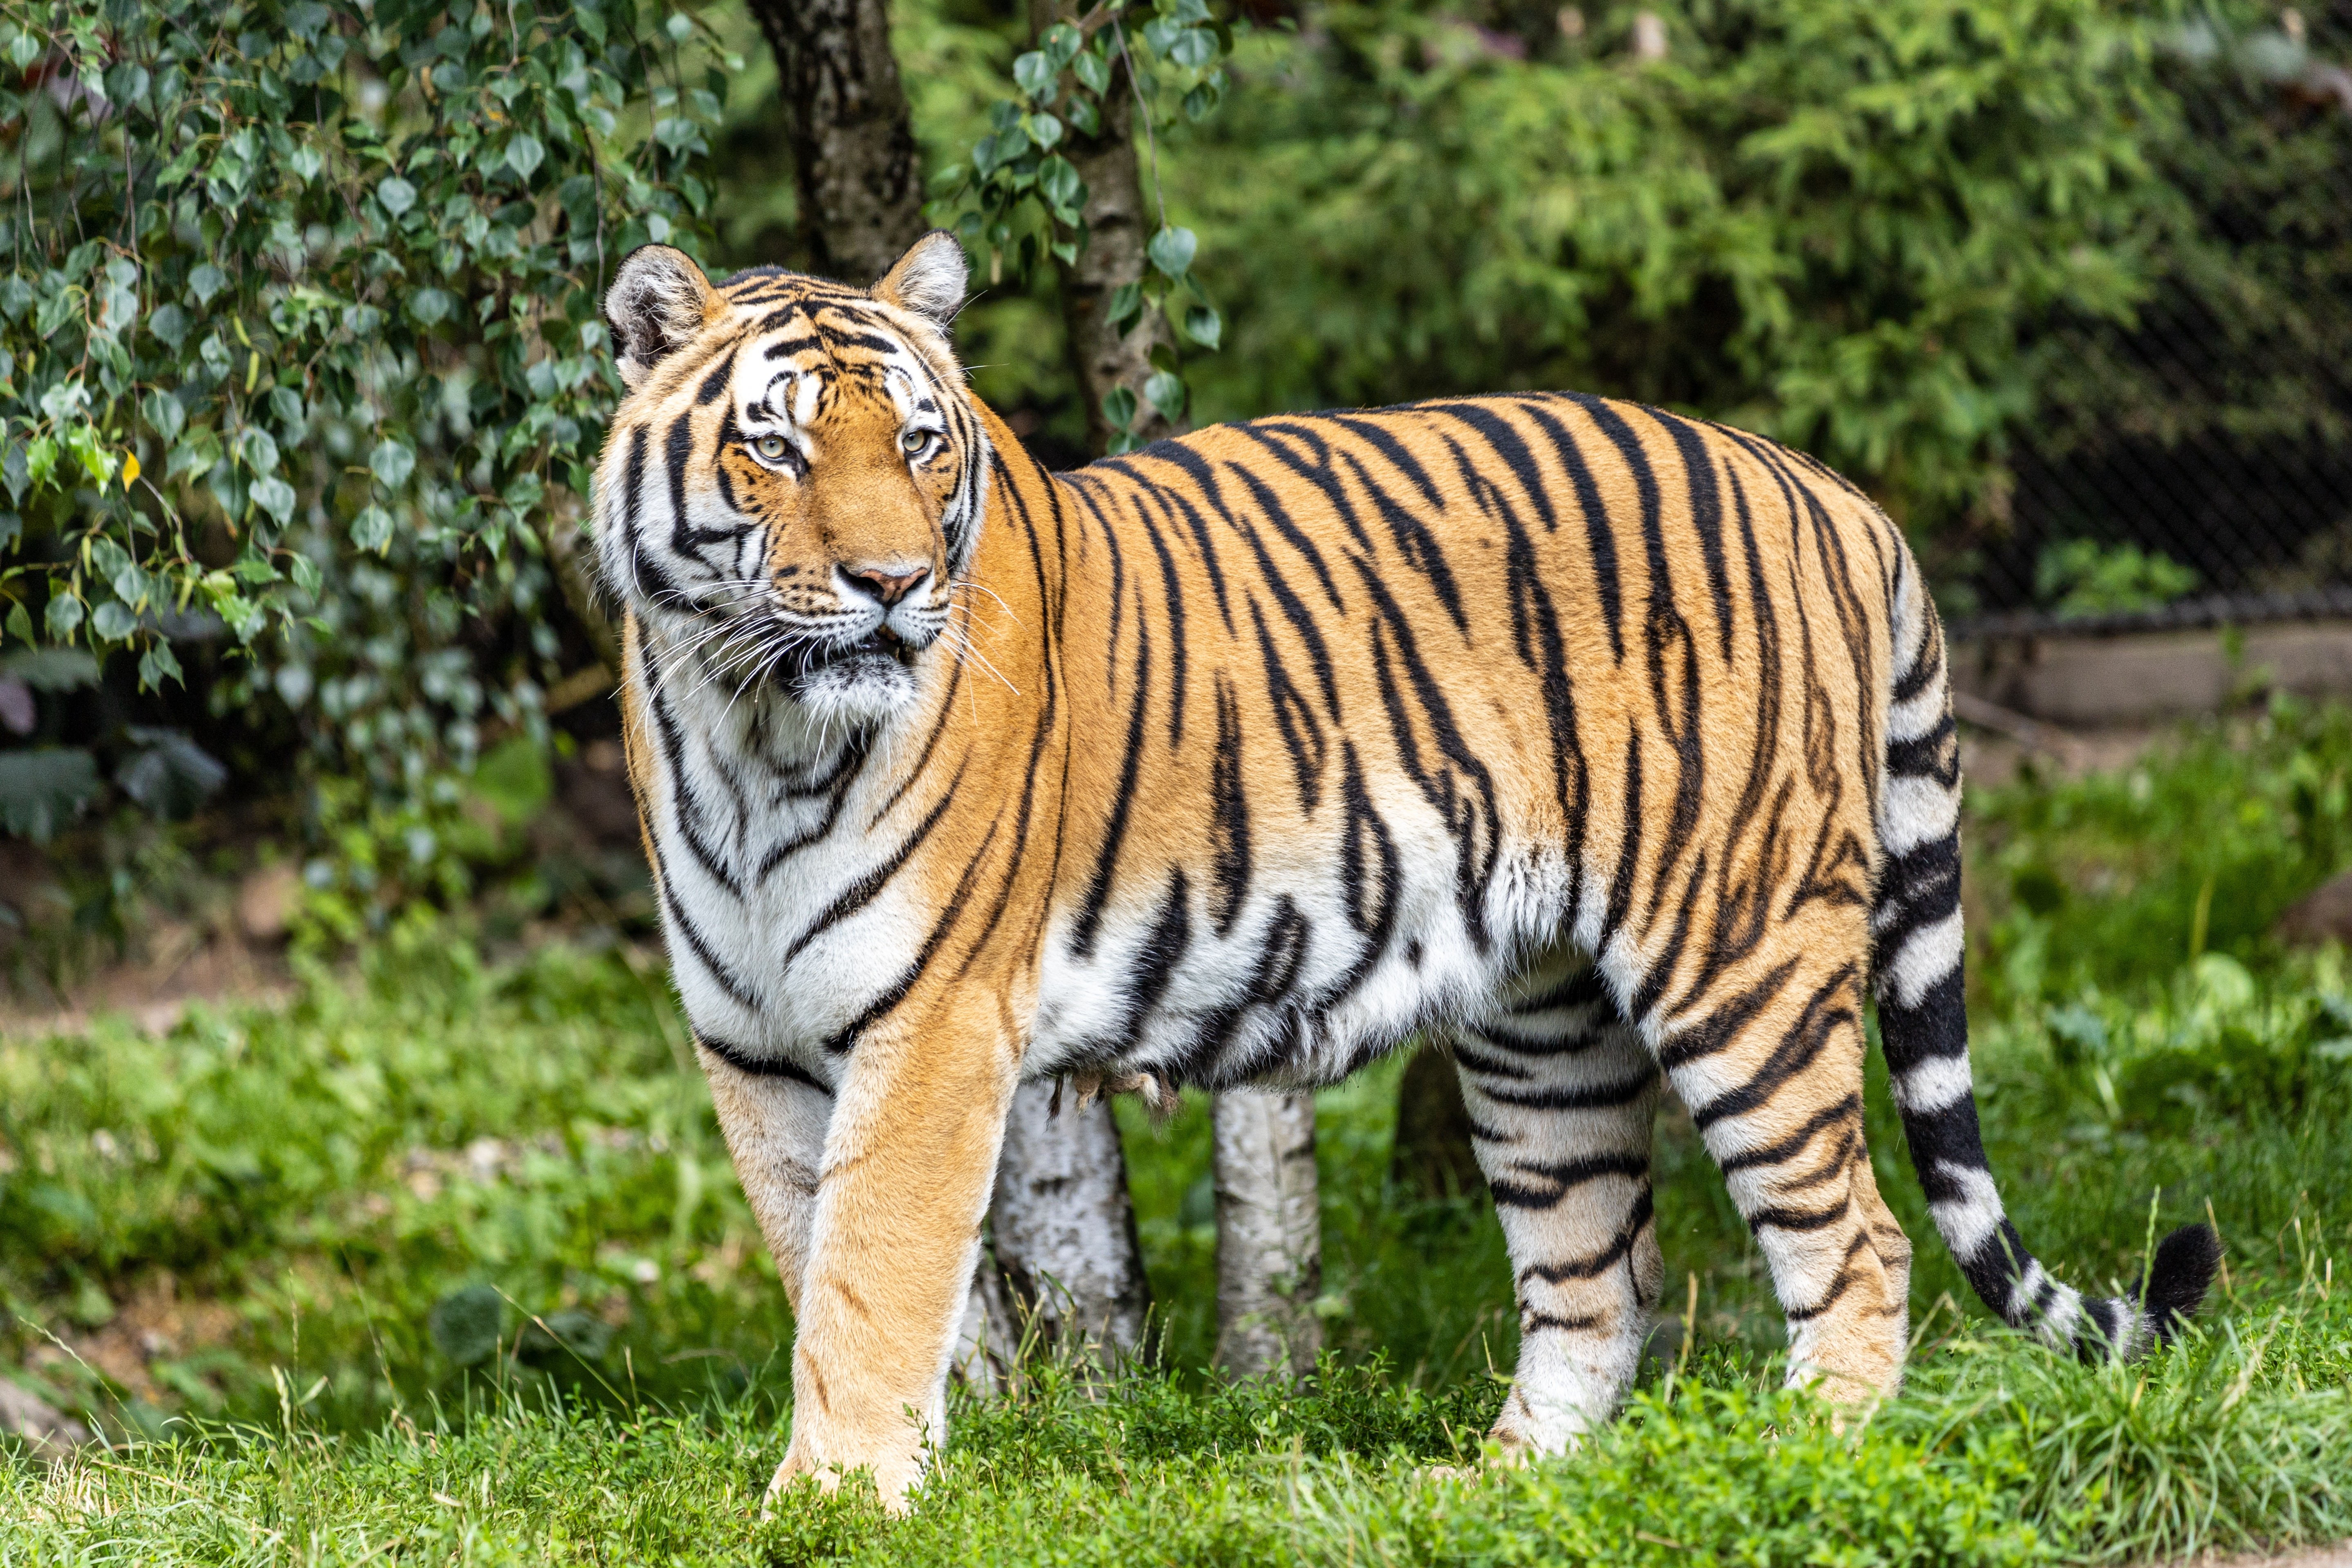 137054 download wallpaper Animals, Tiger, Predator, Big Cat, Stripes, Streaks, Sight, Opinion screensavers and pictures for free